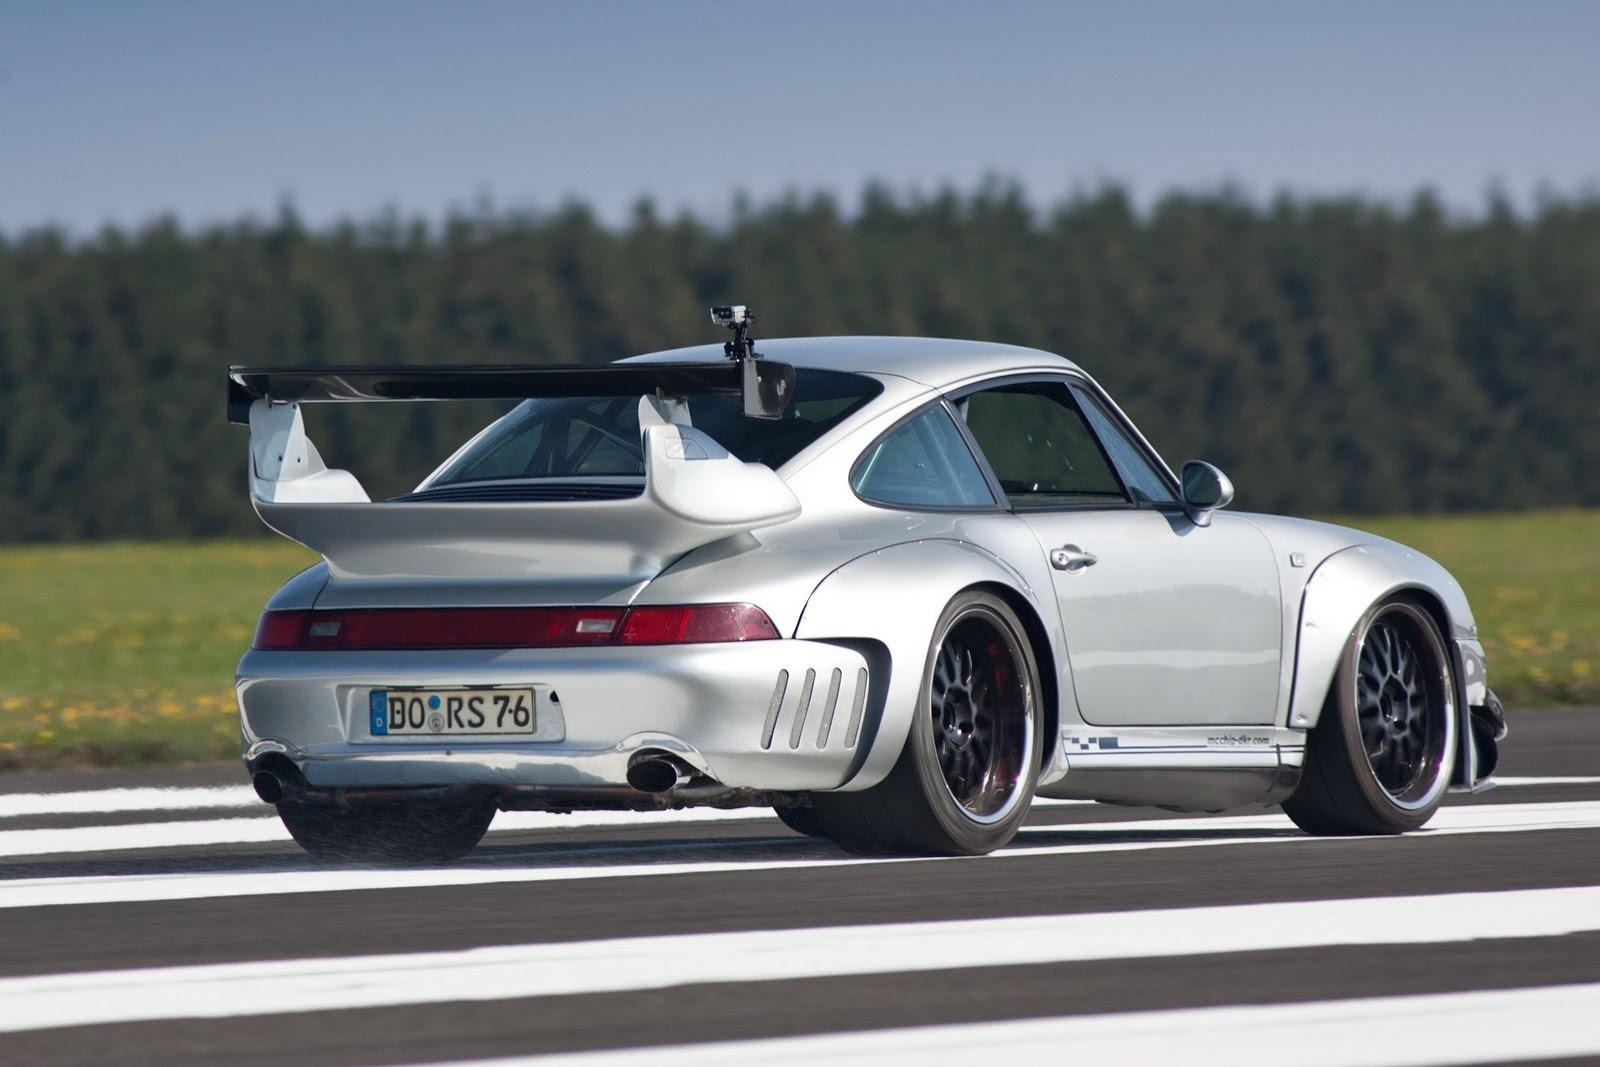 Famous Tuned Cars: Porsche 993 GT2 Turbo 3.6 Widebody